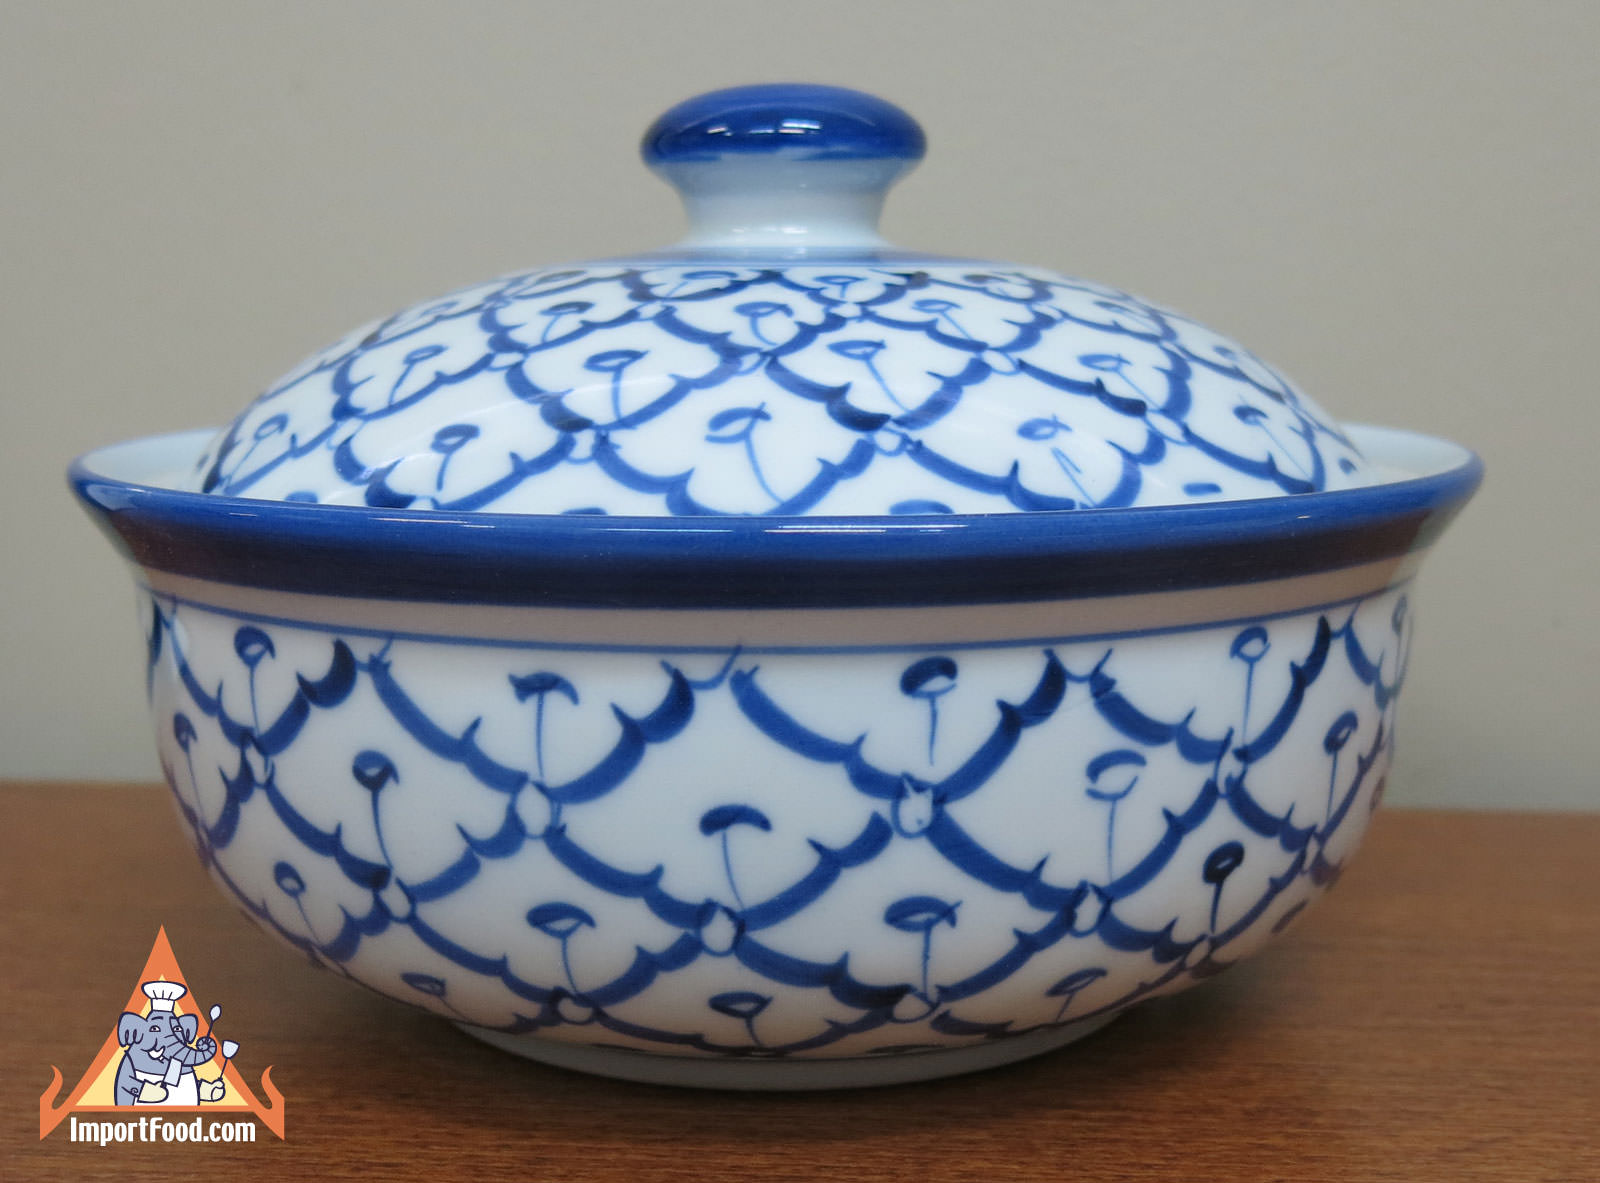 Brand new Thai Ceramic, 7 inch serving bowl w/lid :: ImportFood RM33